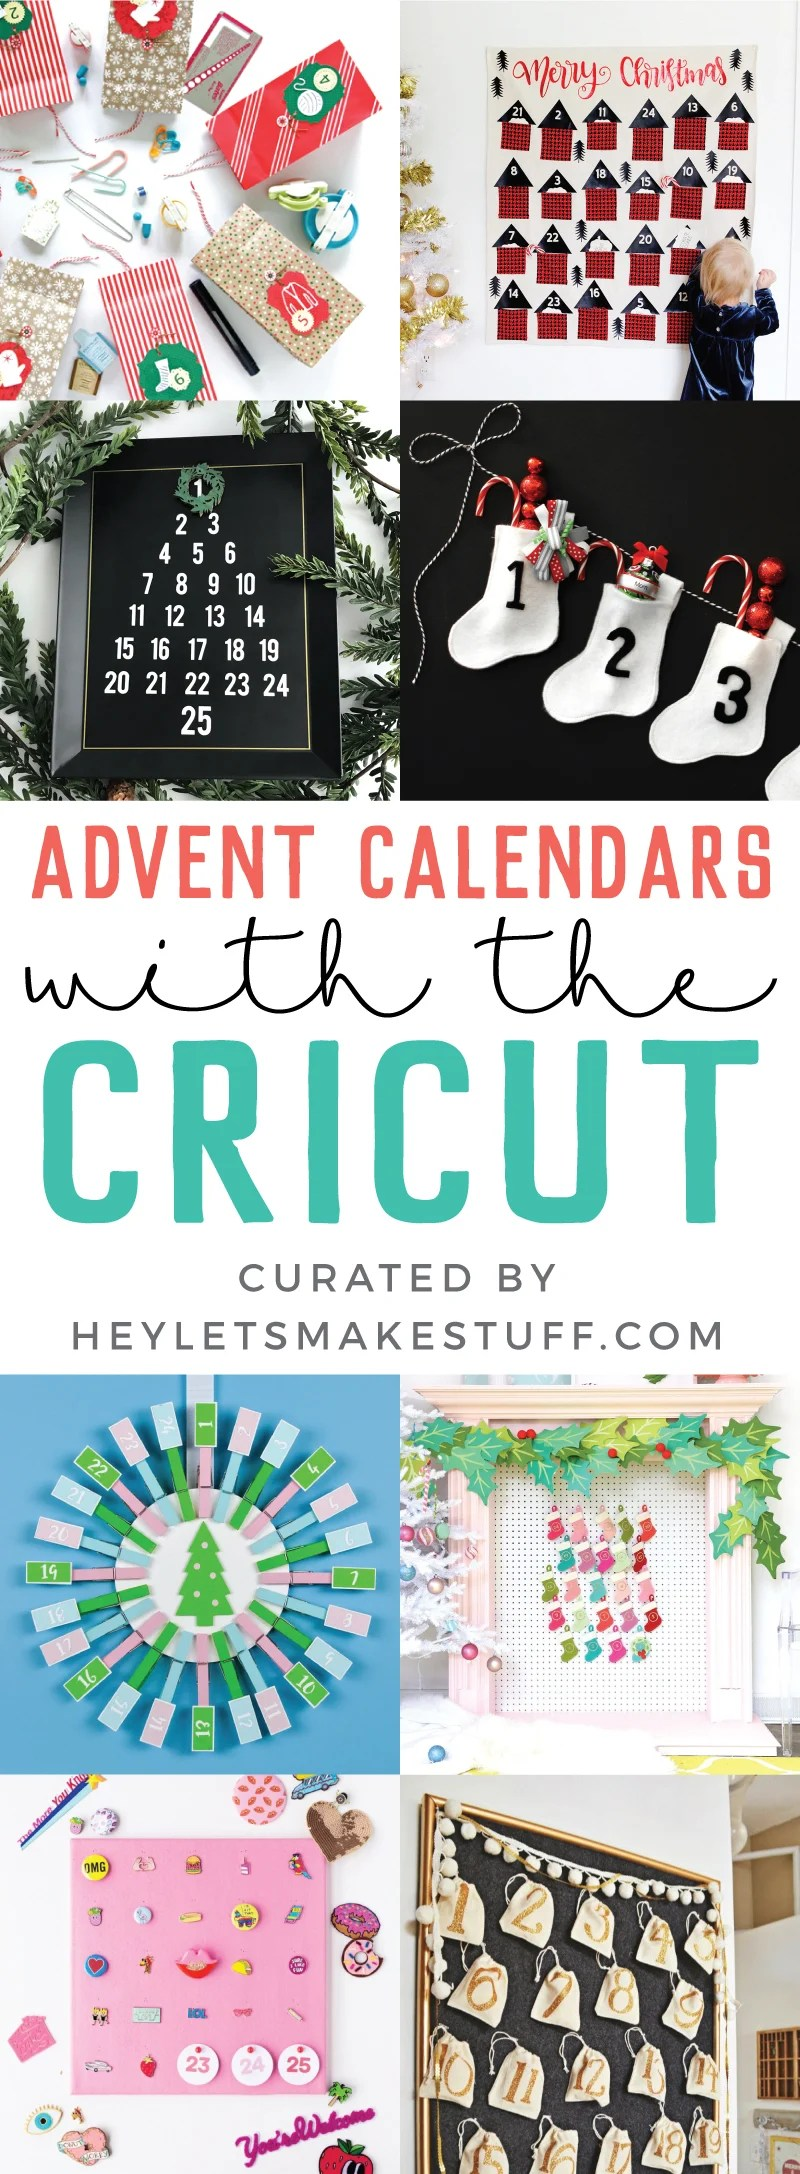 Count down the days to Christmas with these fun DIY Cricut advent calendars! Each of these Christmas advent calendars is made using your Cricut Explore or Cricut Maker—so many festive and fun ideas for your family! via @heyletsmakestuf